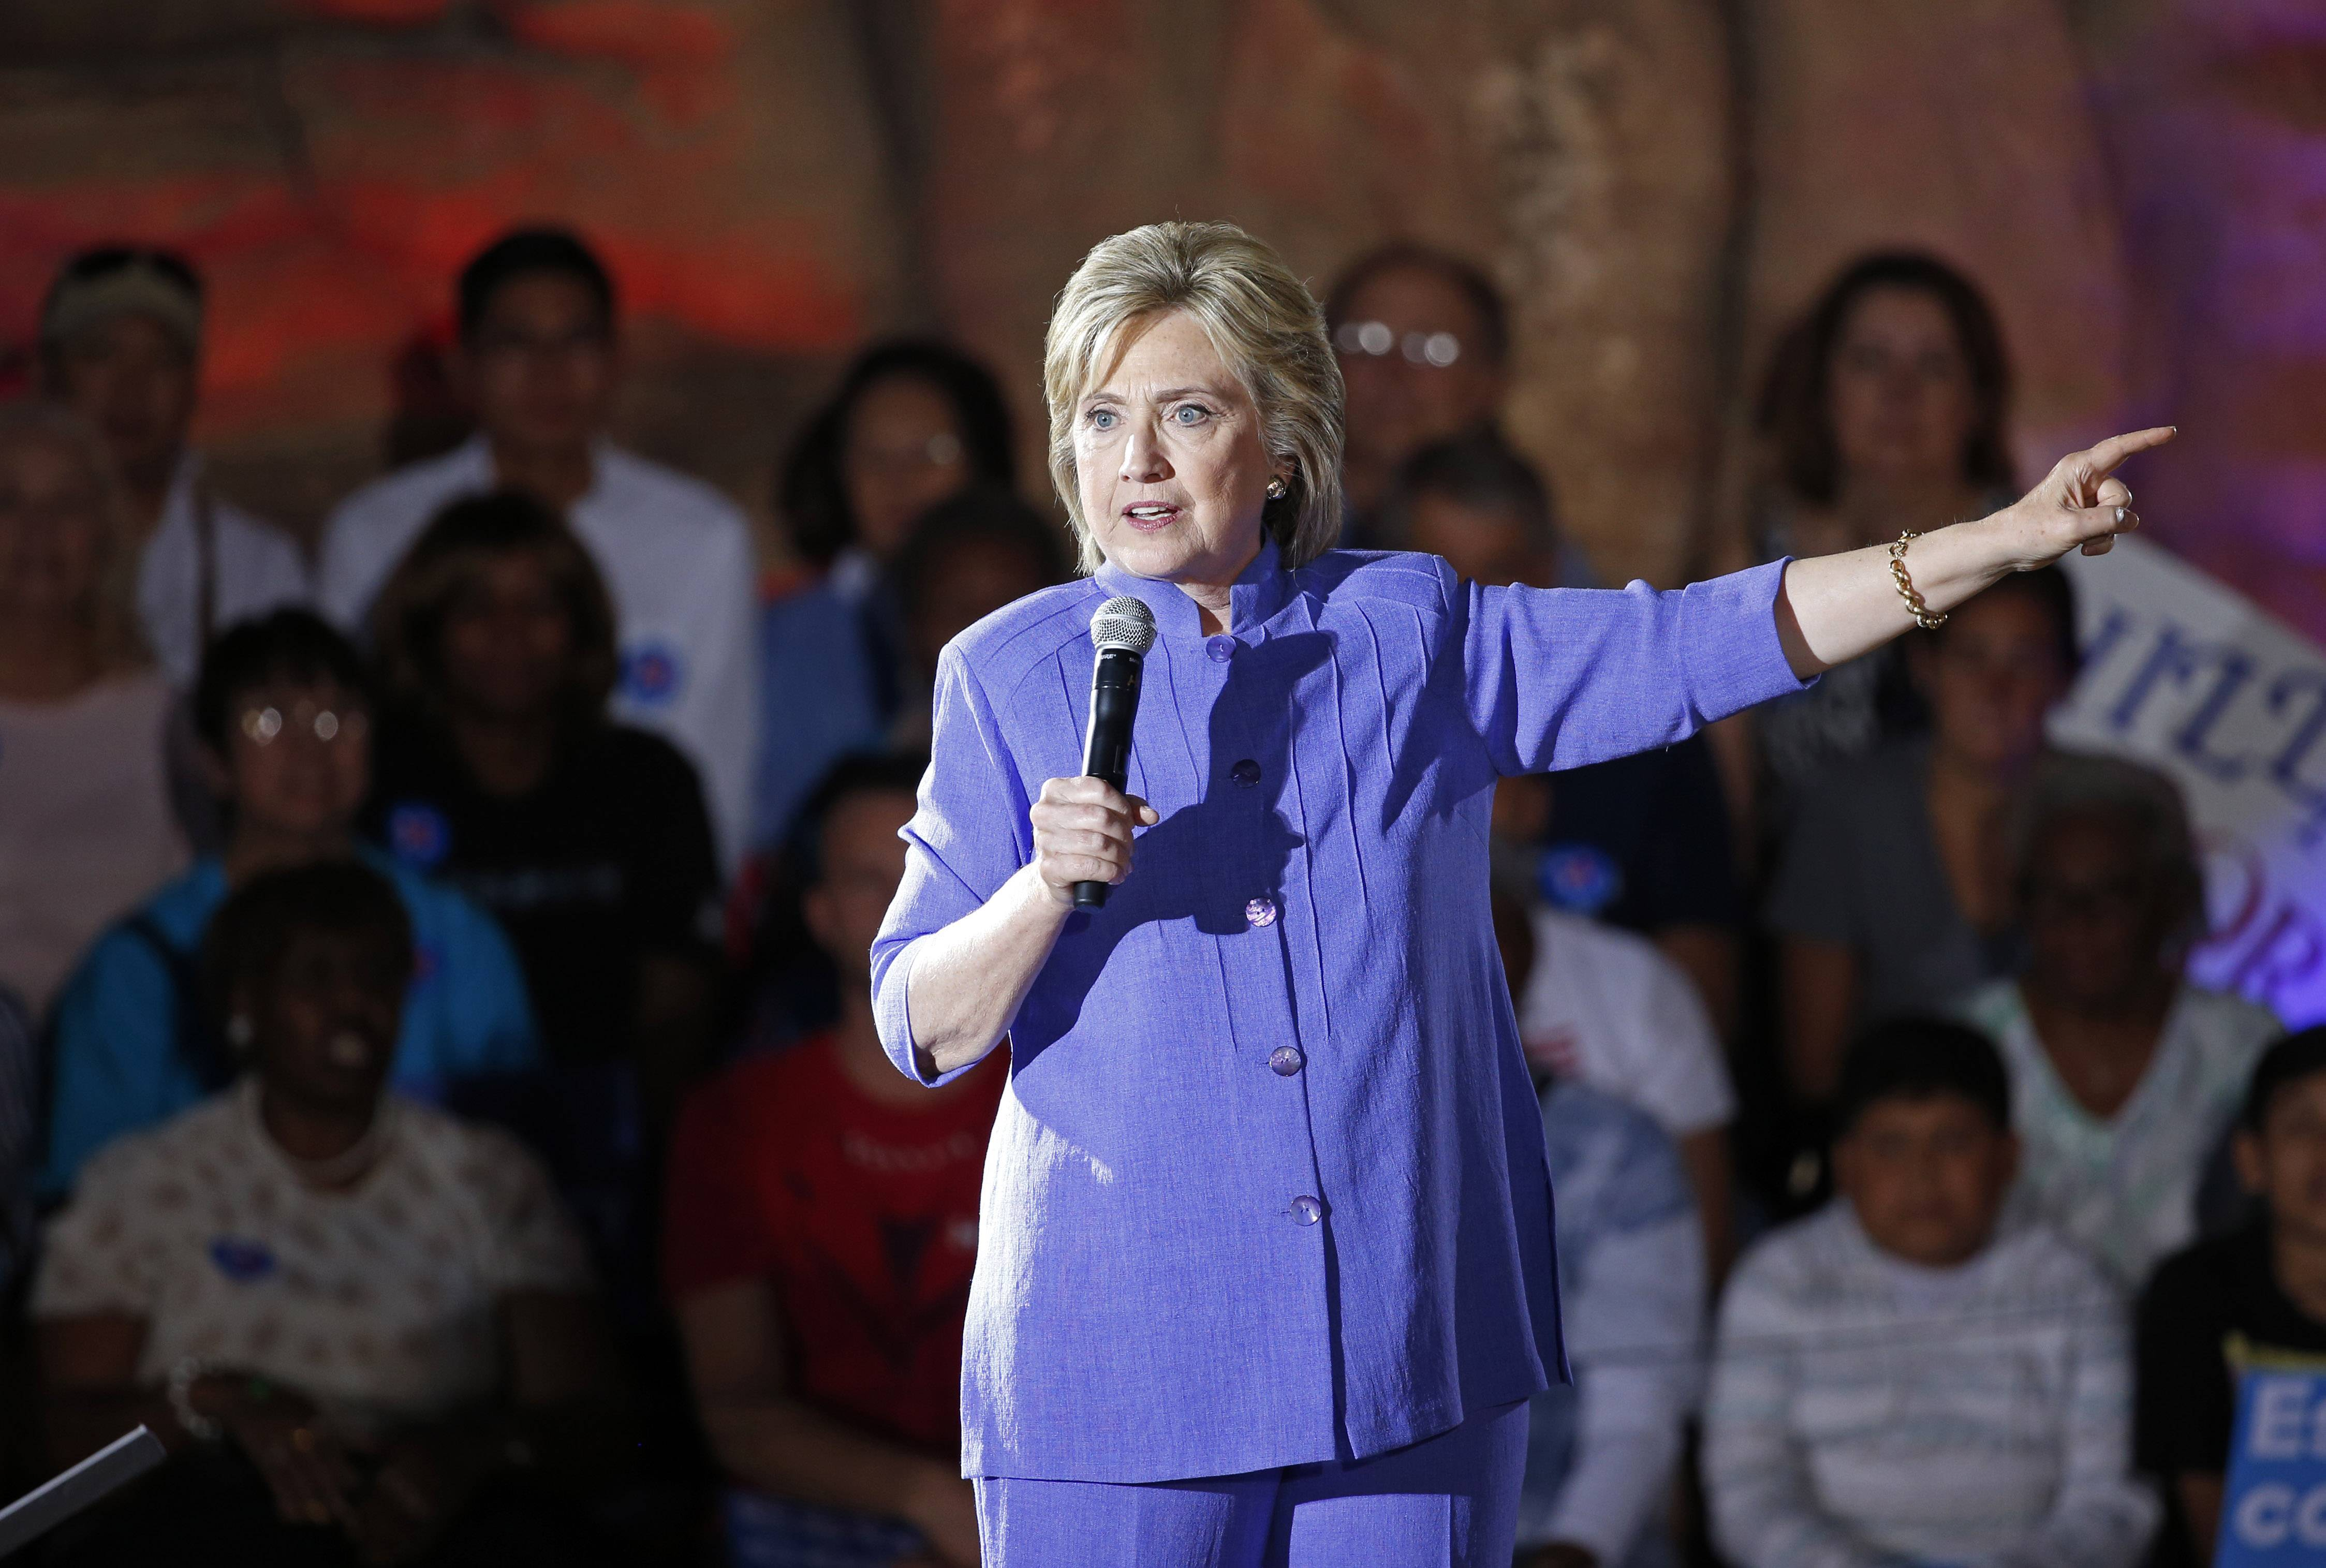 Democratic presidential candidate Hillary Clinton speaks at a rally Wednesday in Las Vegas.